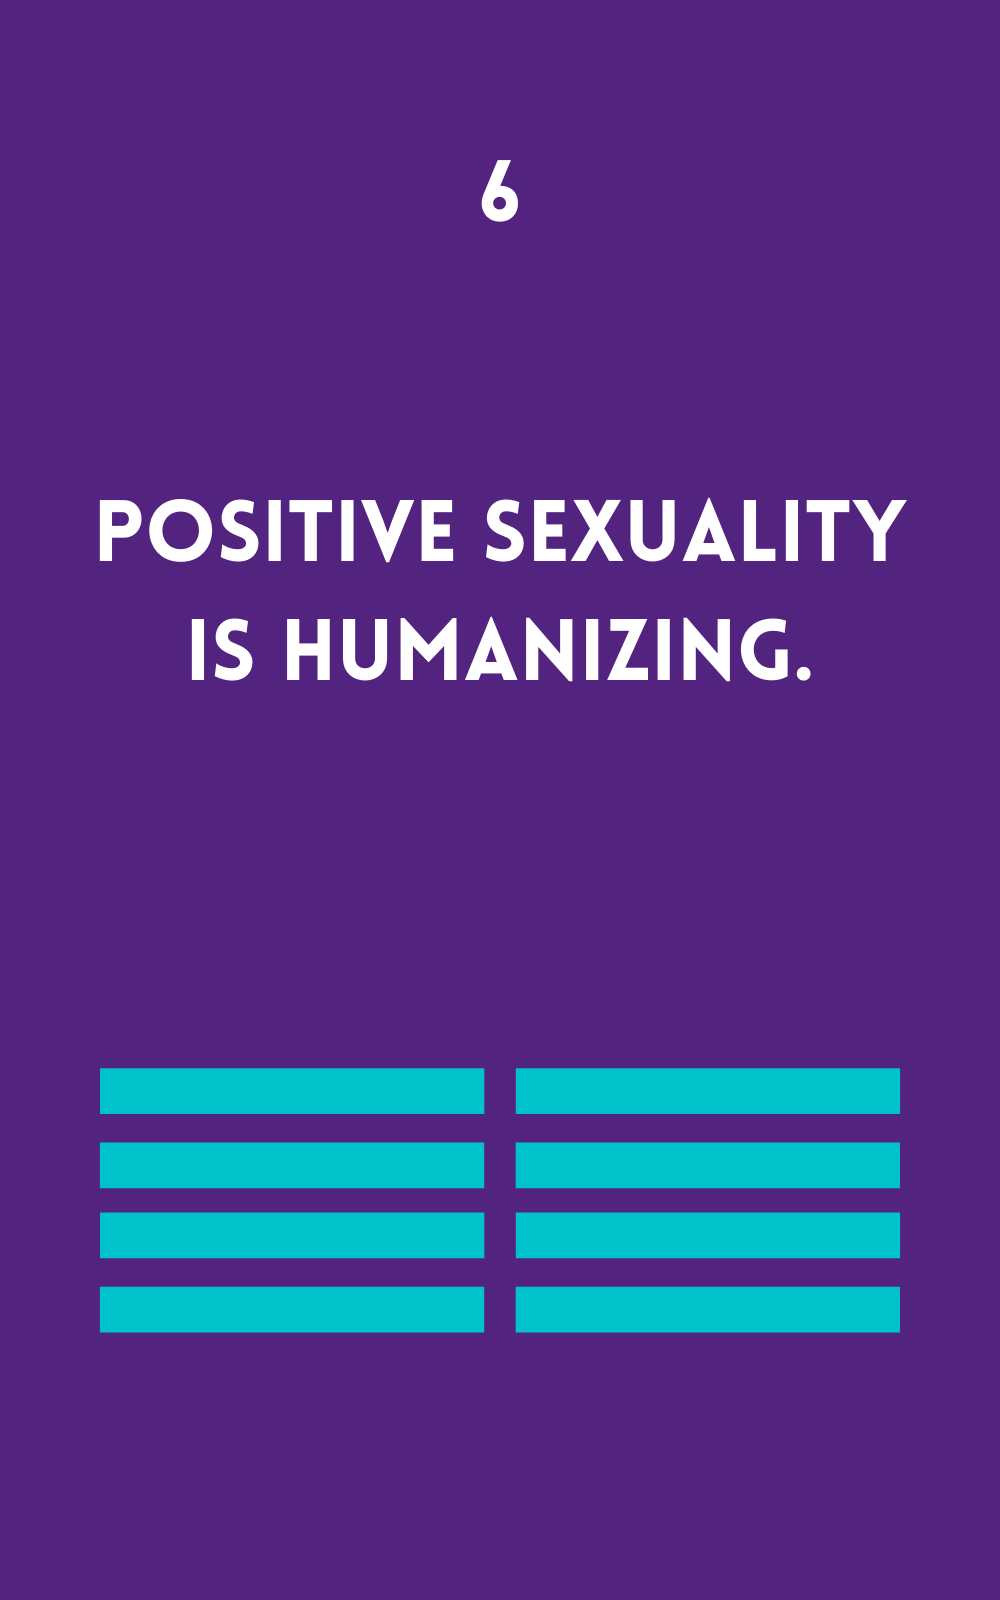 Positive Sexuality is Humanizing